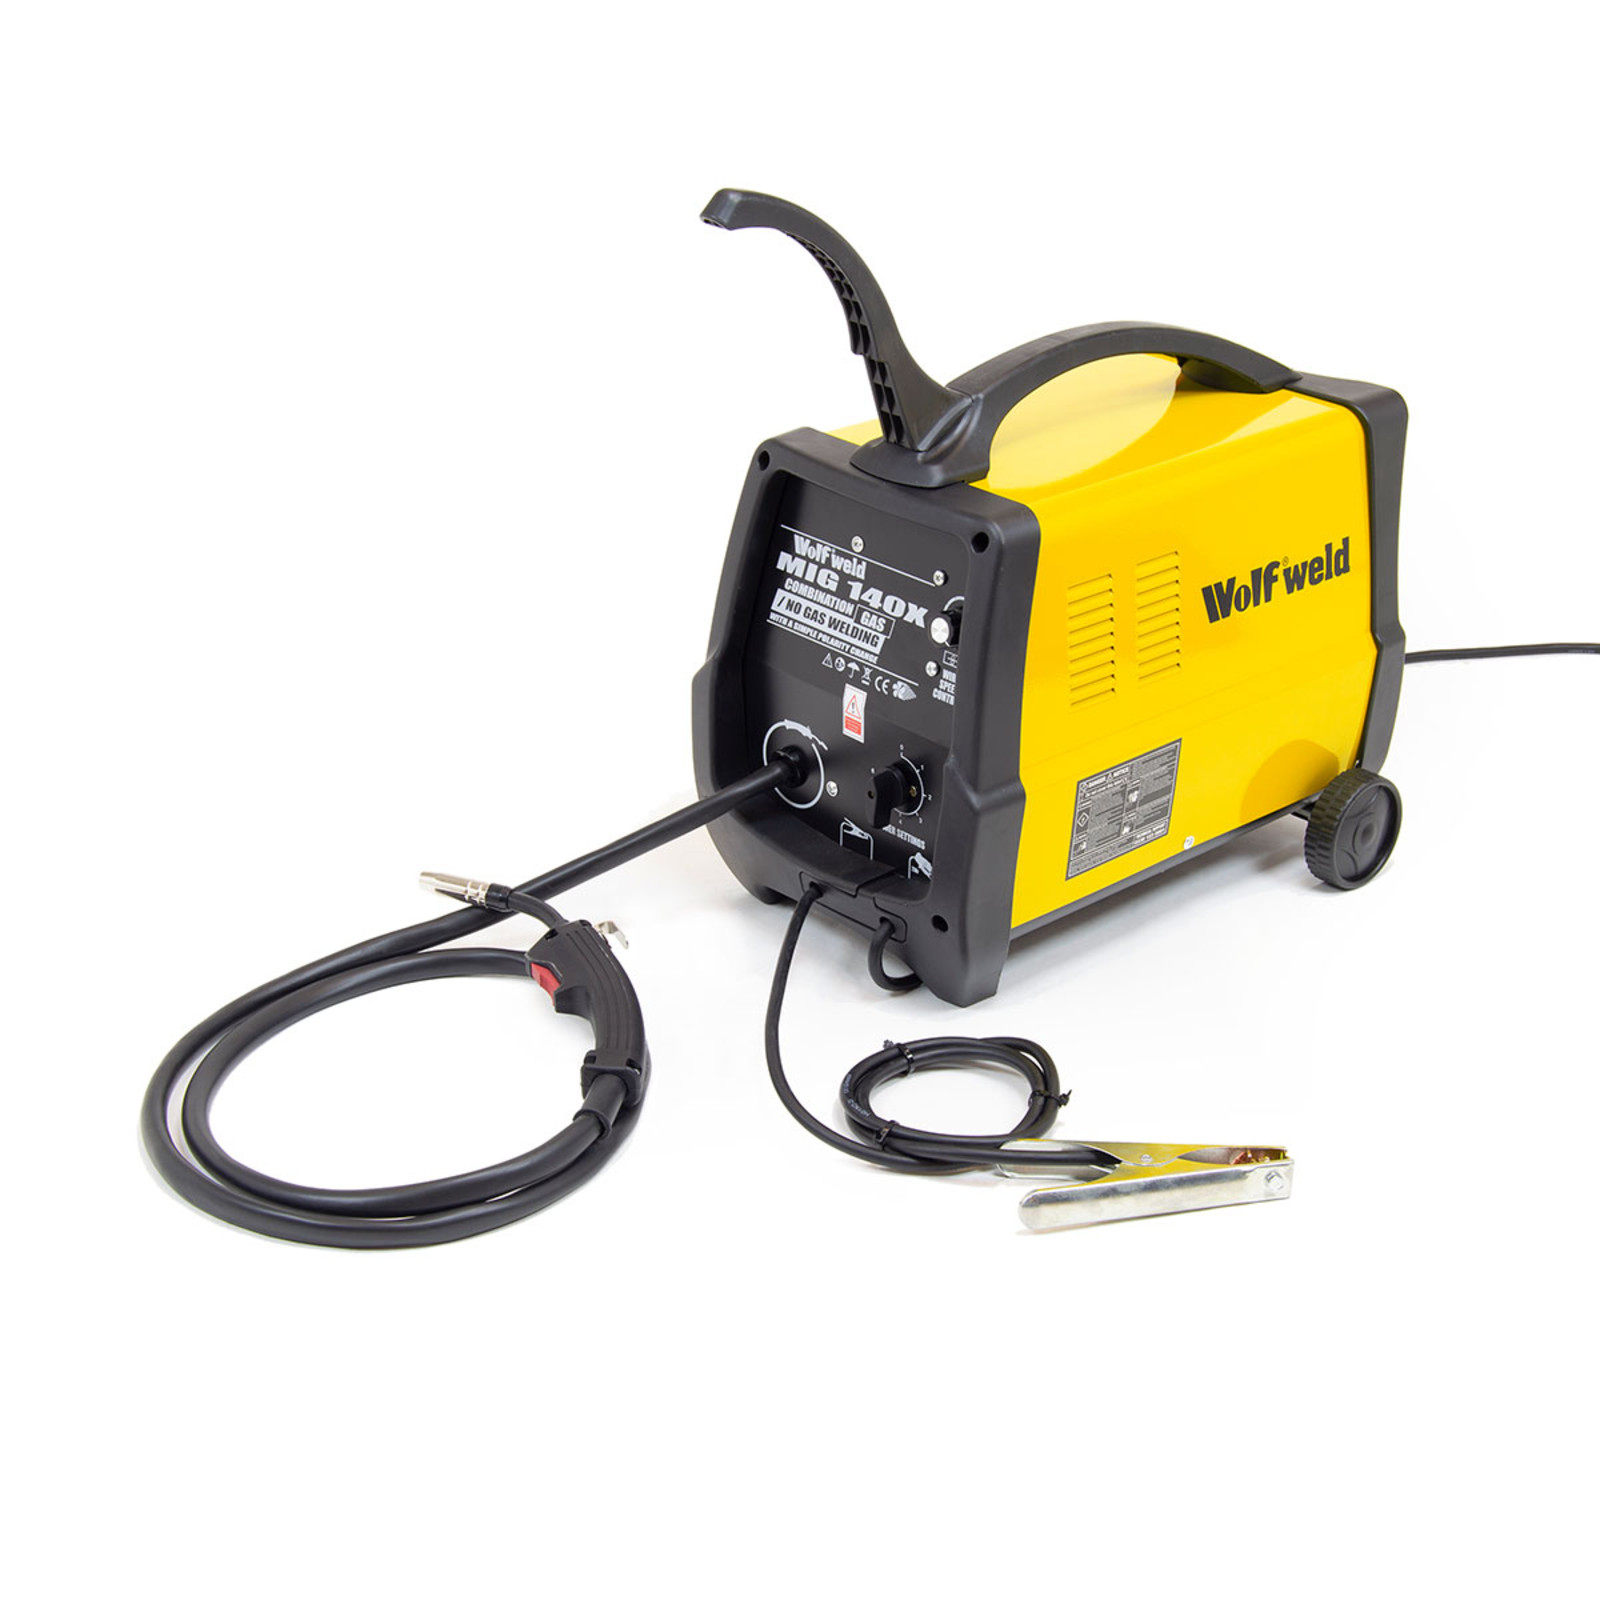 Wolf Combination Gas No Mig 140 Welder Kit Tools To Go Wiring Diagram For Oven Click On The Image Enlarge